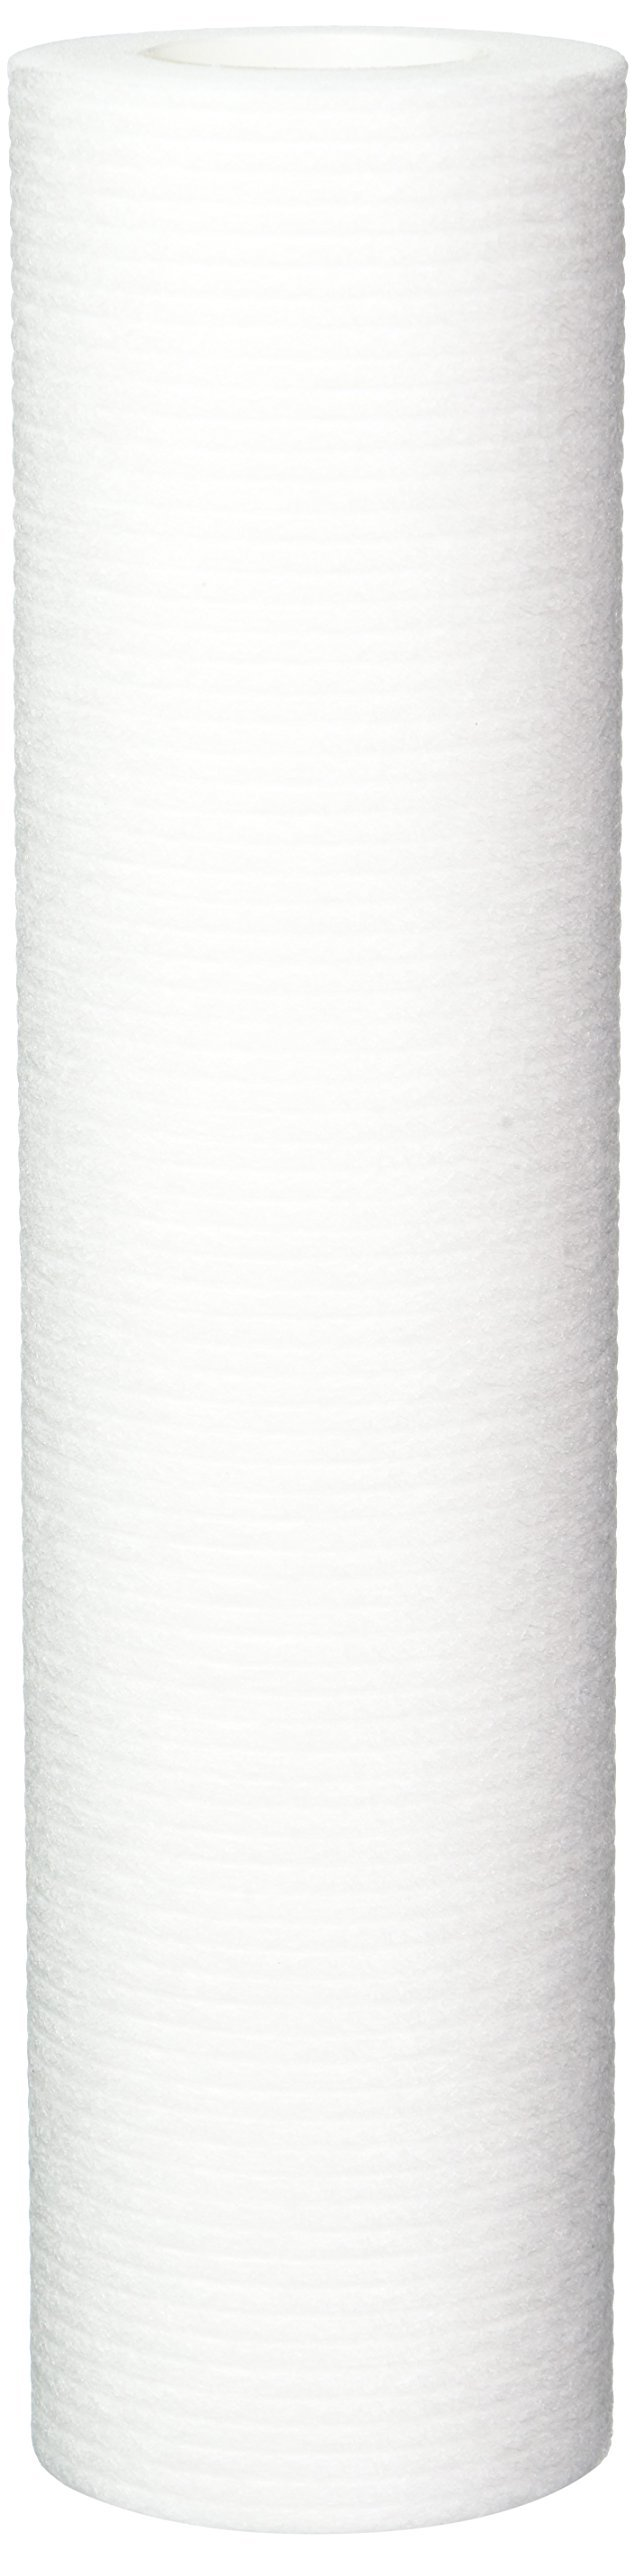 American Plumber WPD-110 Whole House Sediment Filter Cartridge (2-Pack)